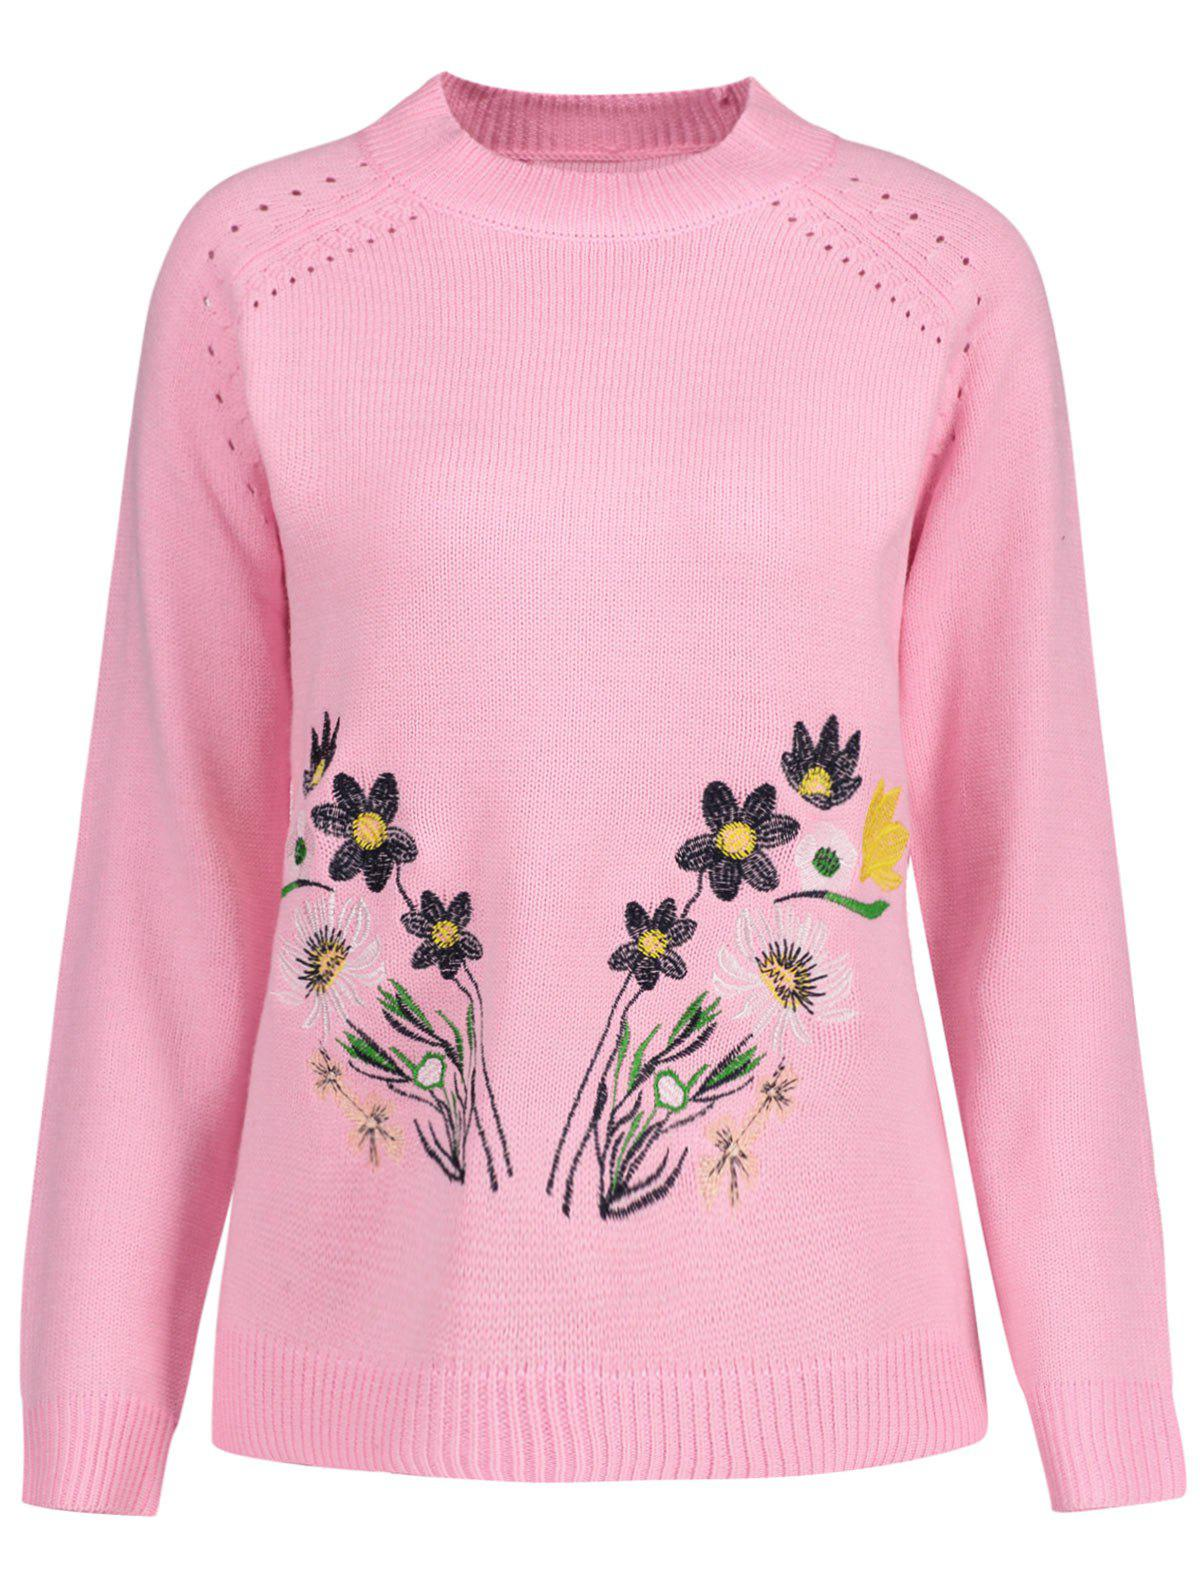 Latest Openwork Plus Size High Neck Floral Embroidered Sweater